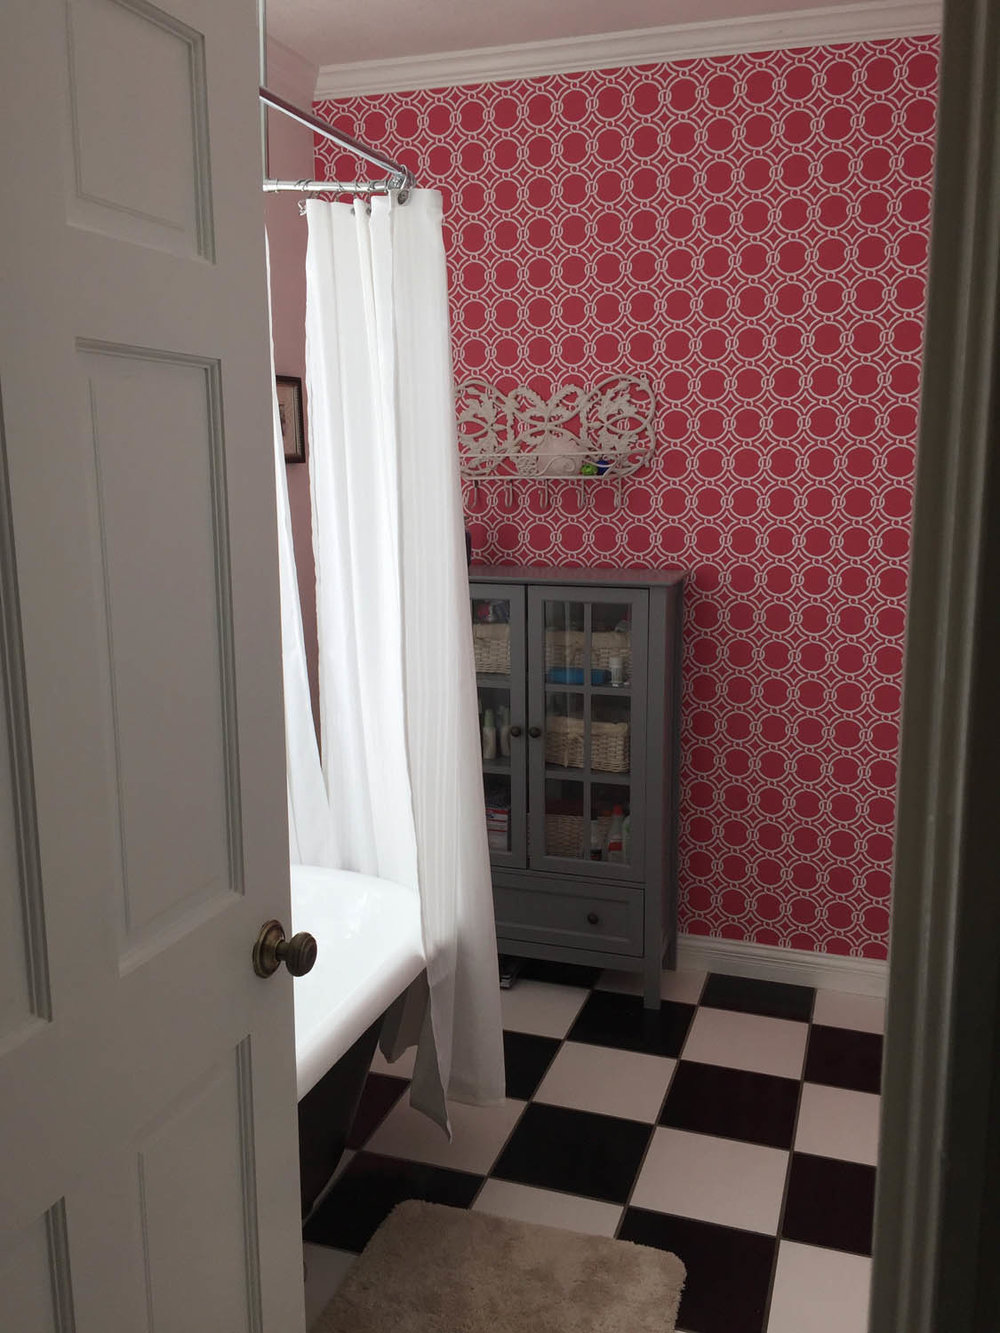 Remodeled master bathroom with clawfoot tub and pink wallpaper at Curtice Cottage.